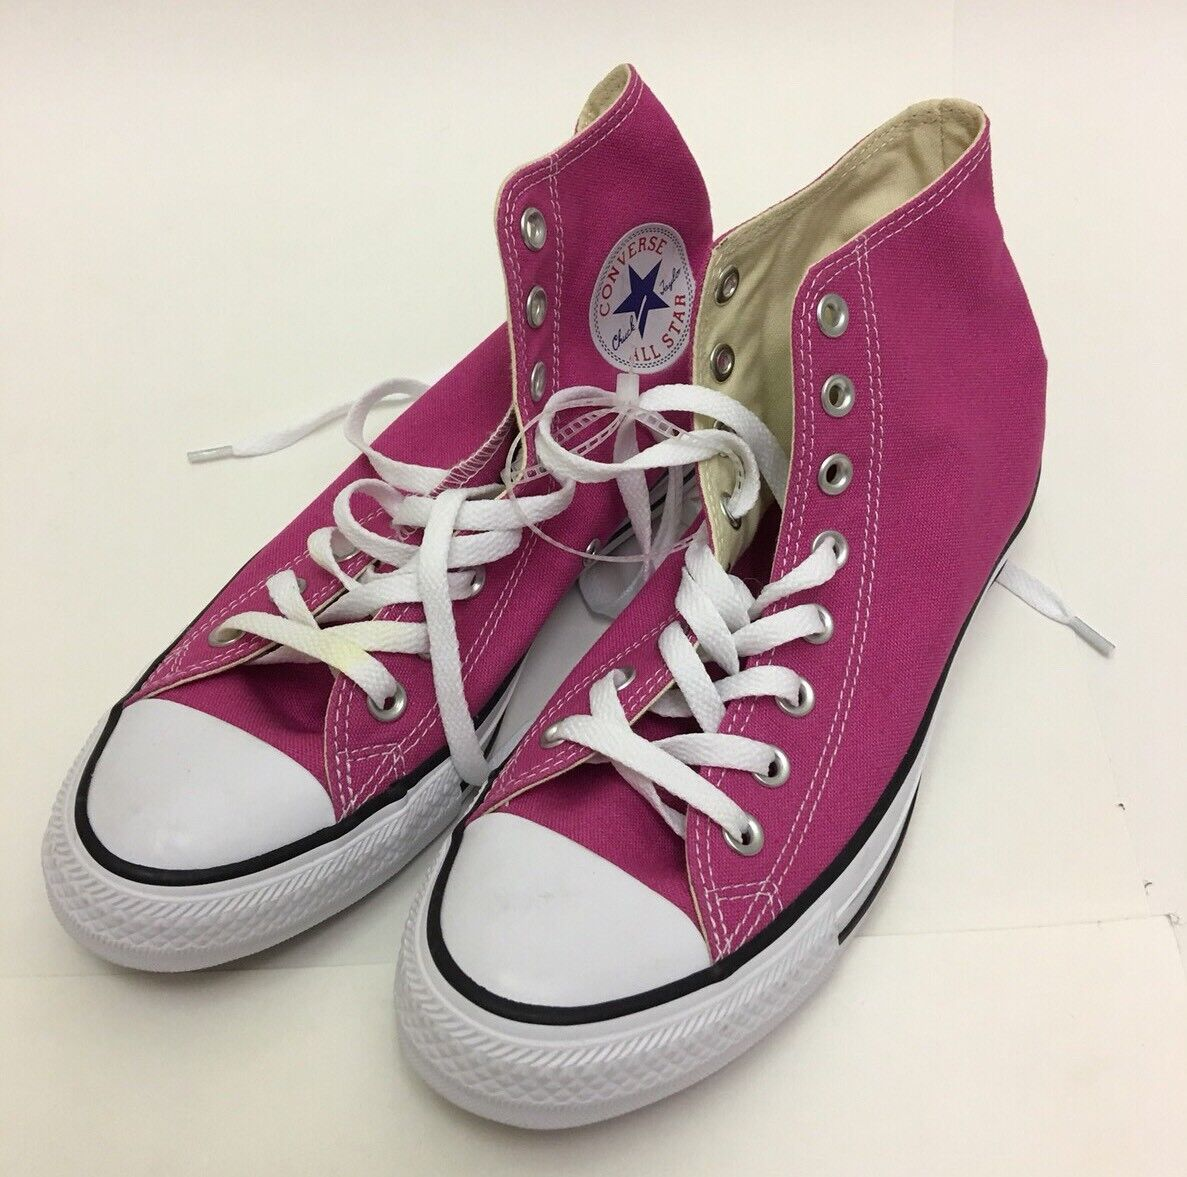 CONVERSE CT HI AS CHUCK TAYLOR ALL STAR CANVAS 151873F PLASTIC PINK/WHITE Sz 7